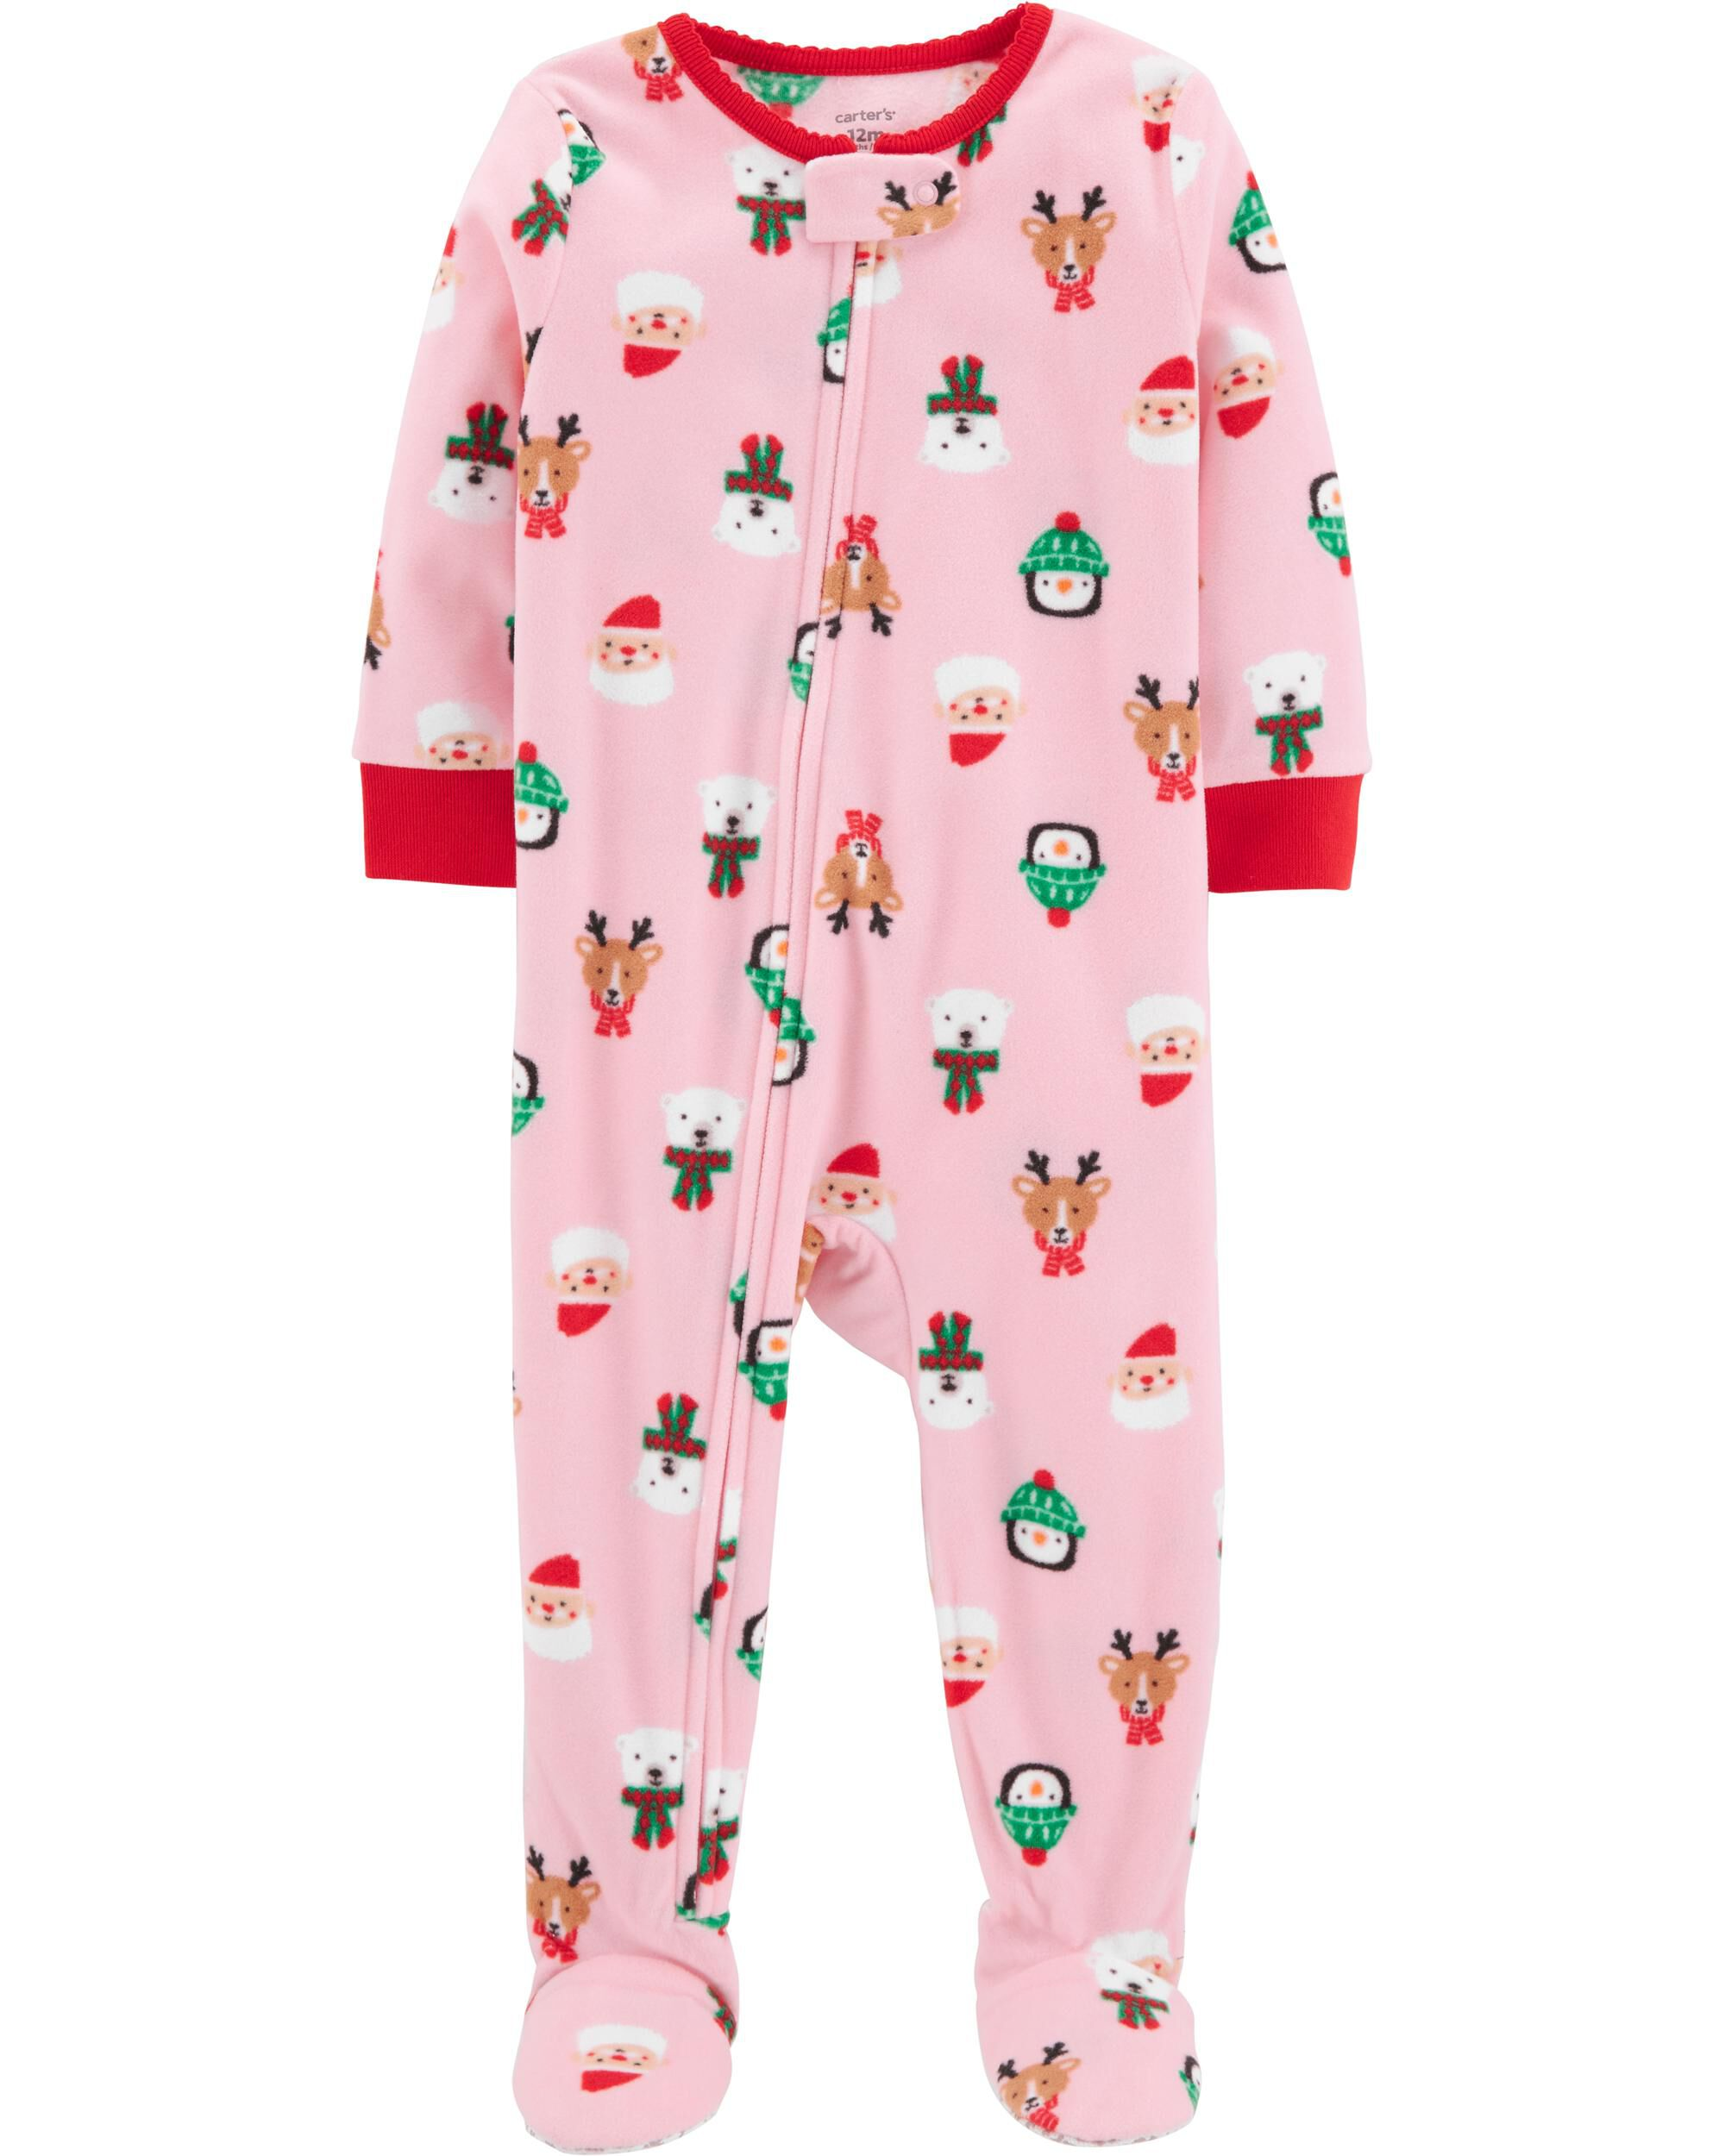 Objective Carters Baby Girl One Piece Dress 18 Months Pink